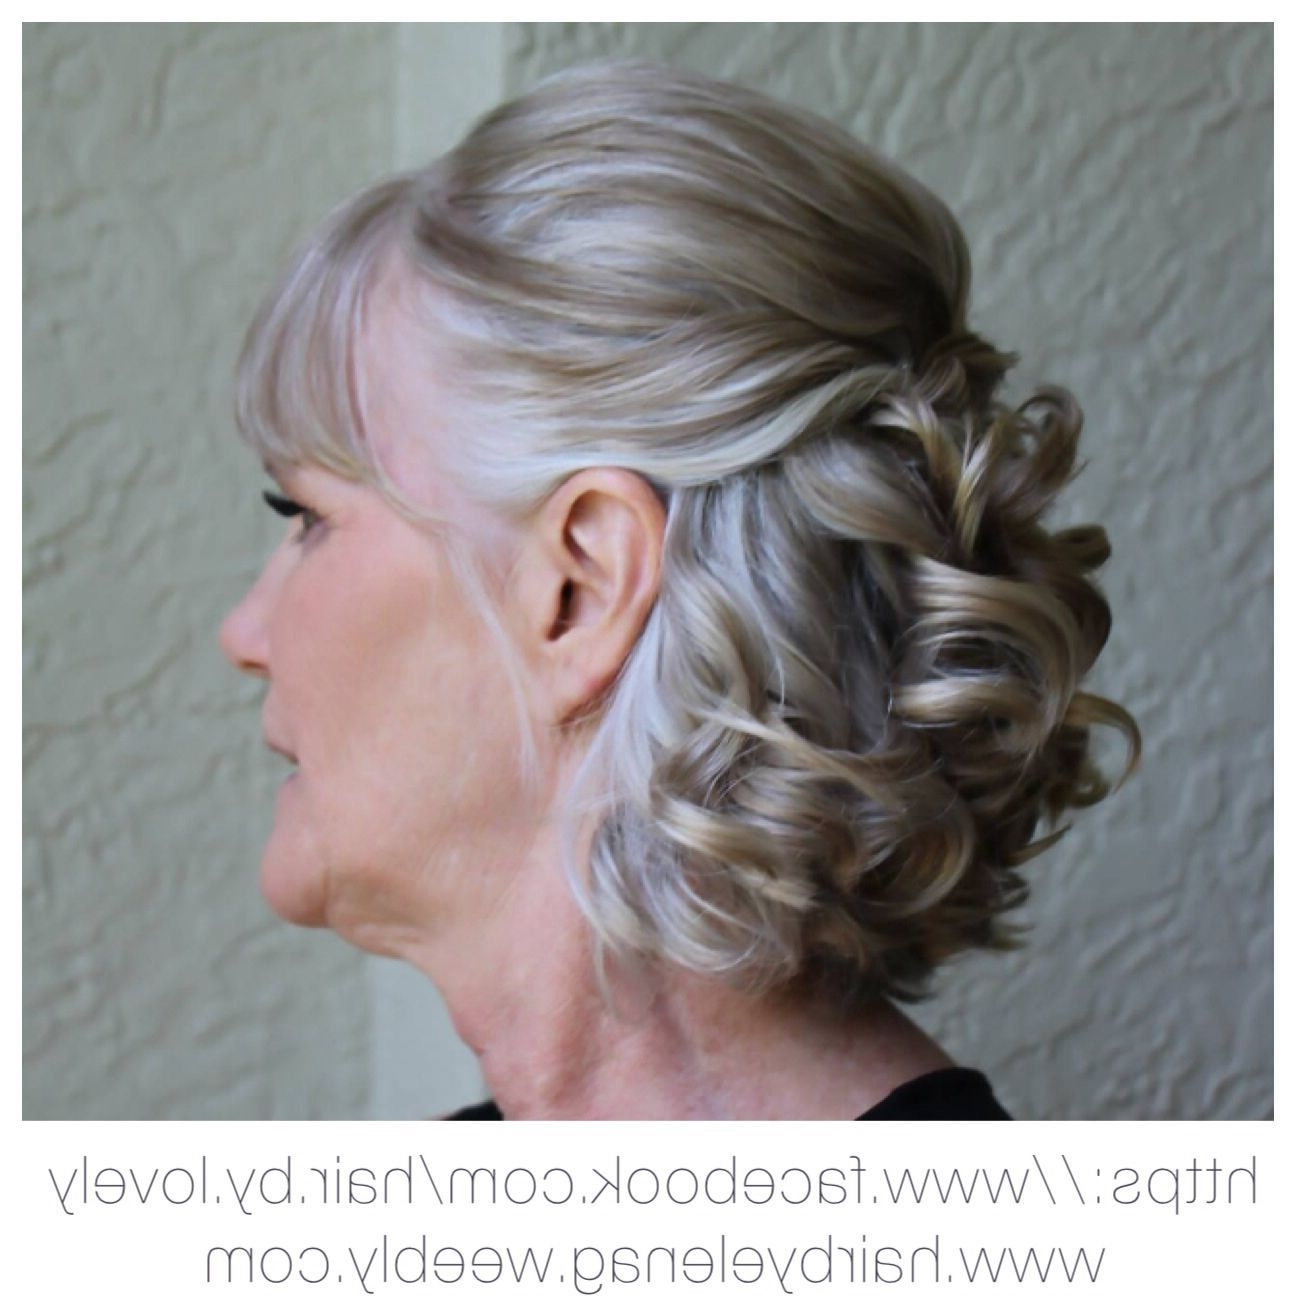 Bridal Hair, Wedding Hair, Mother Of The Groom | Wedding Hair Throughout Updo Hairstyles For Mother Of The Groom (View 3 of 15)